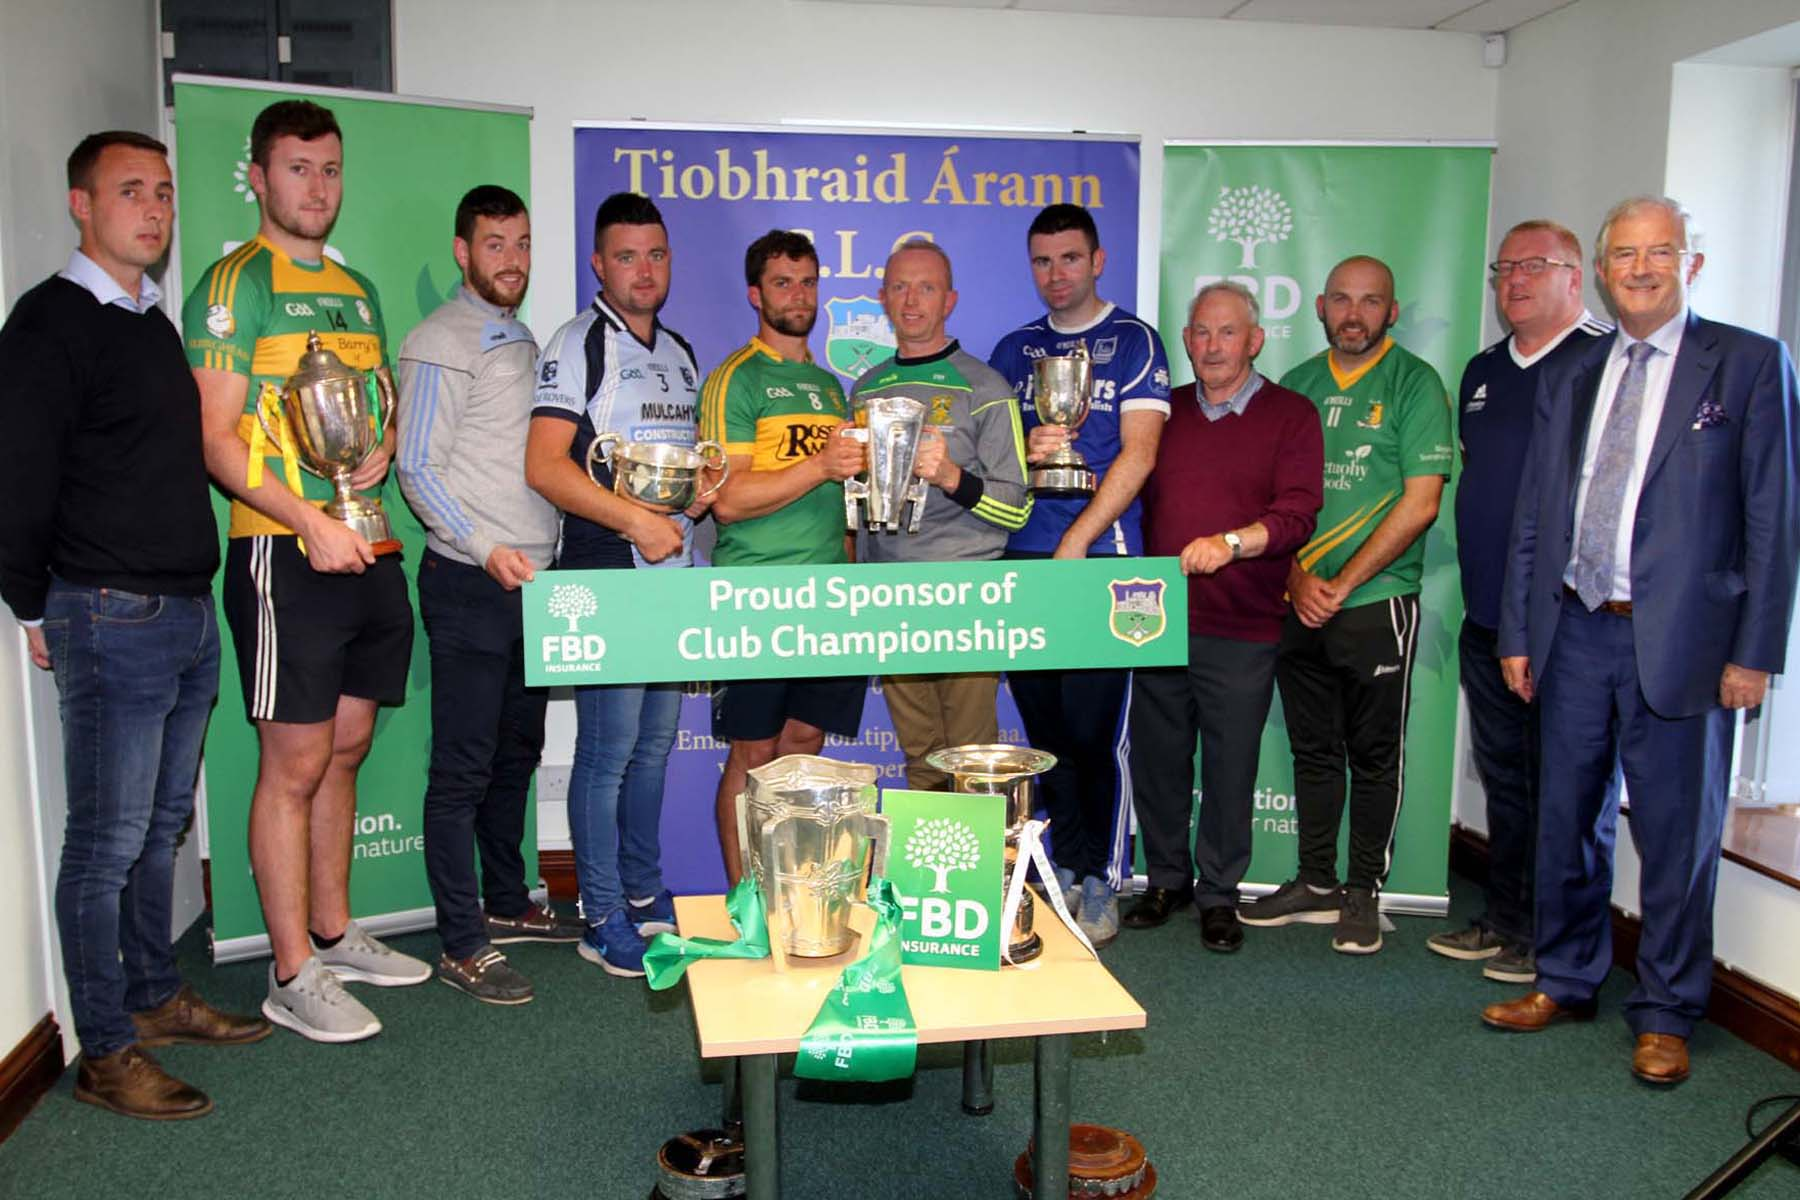 Tipperary GAA / FBD Insurance Press Release